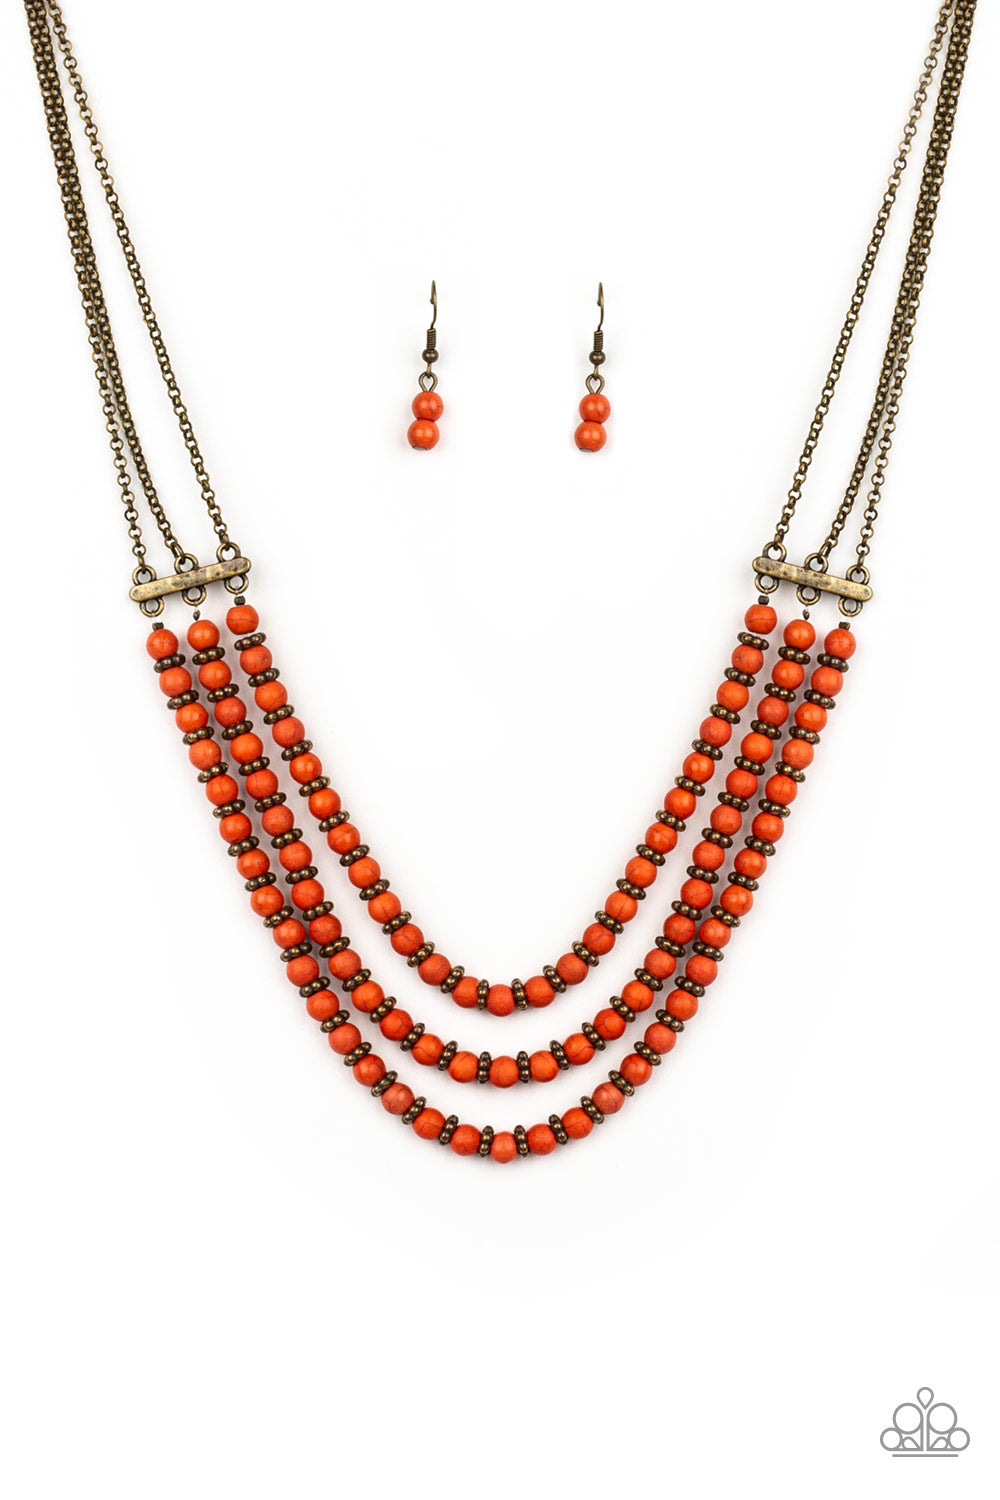 Paparazzi Accessories - Terra Trails - Orange Necklace